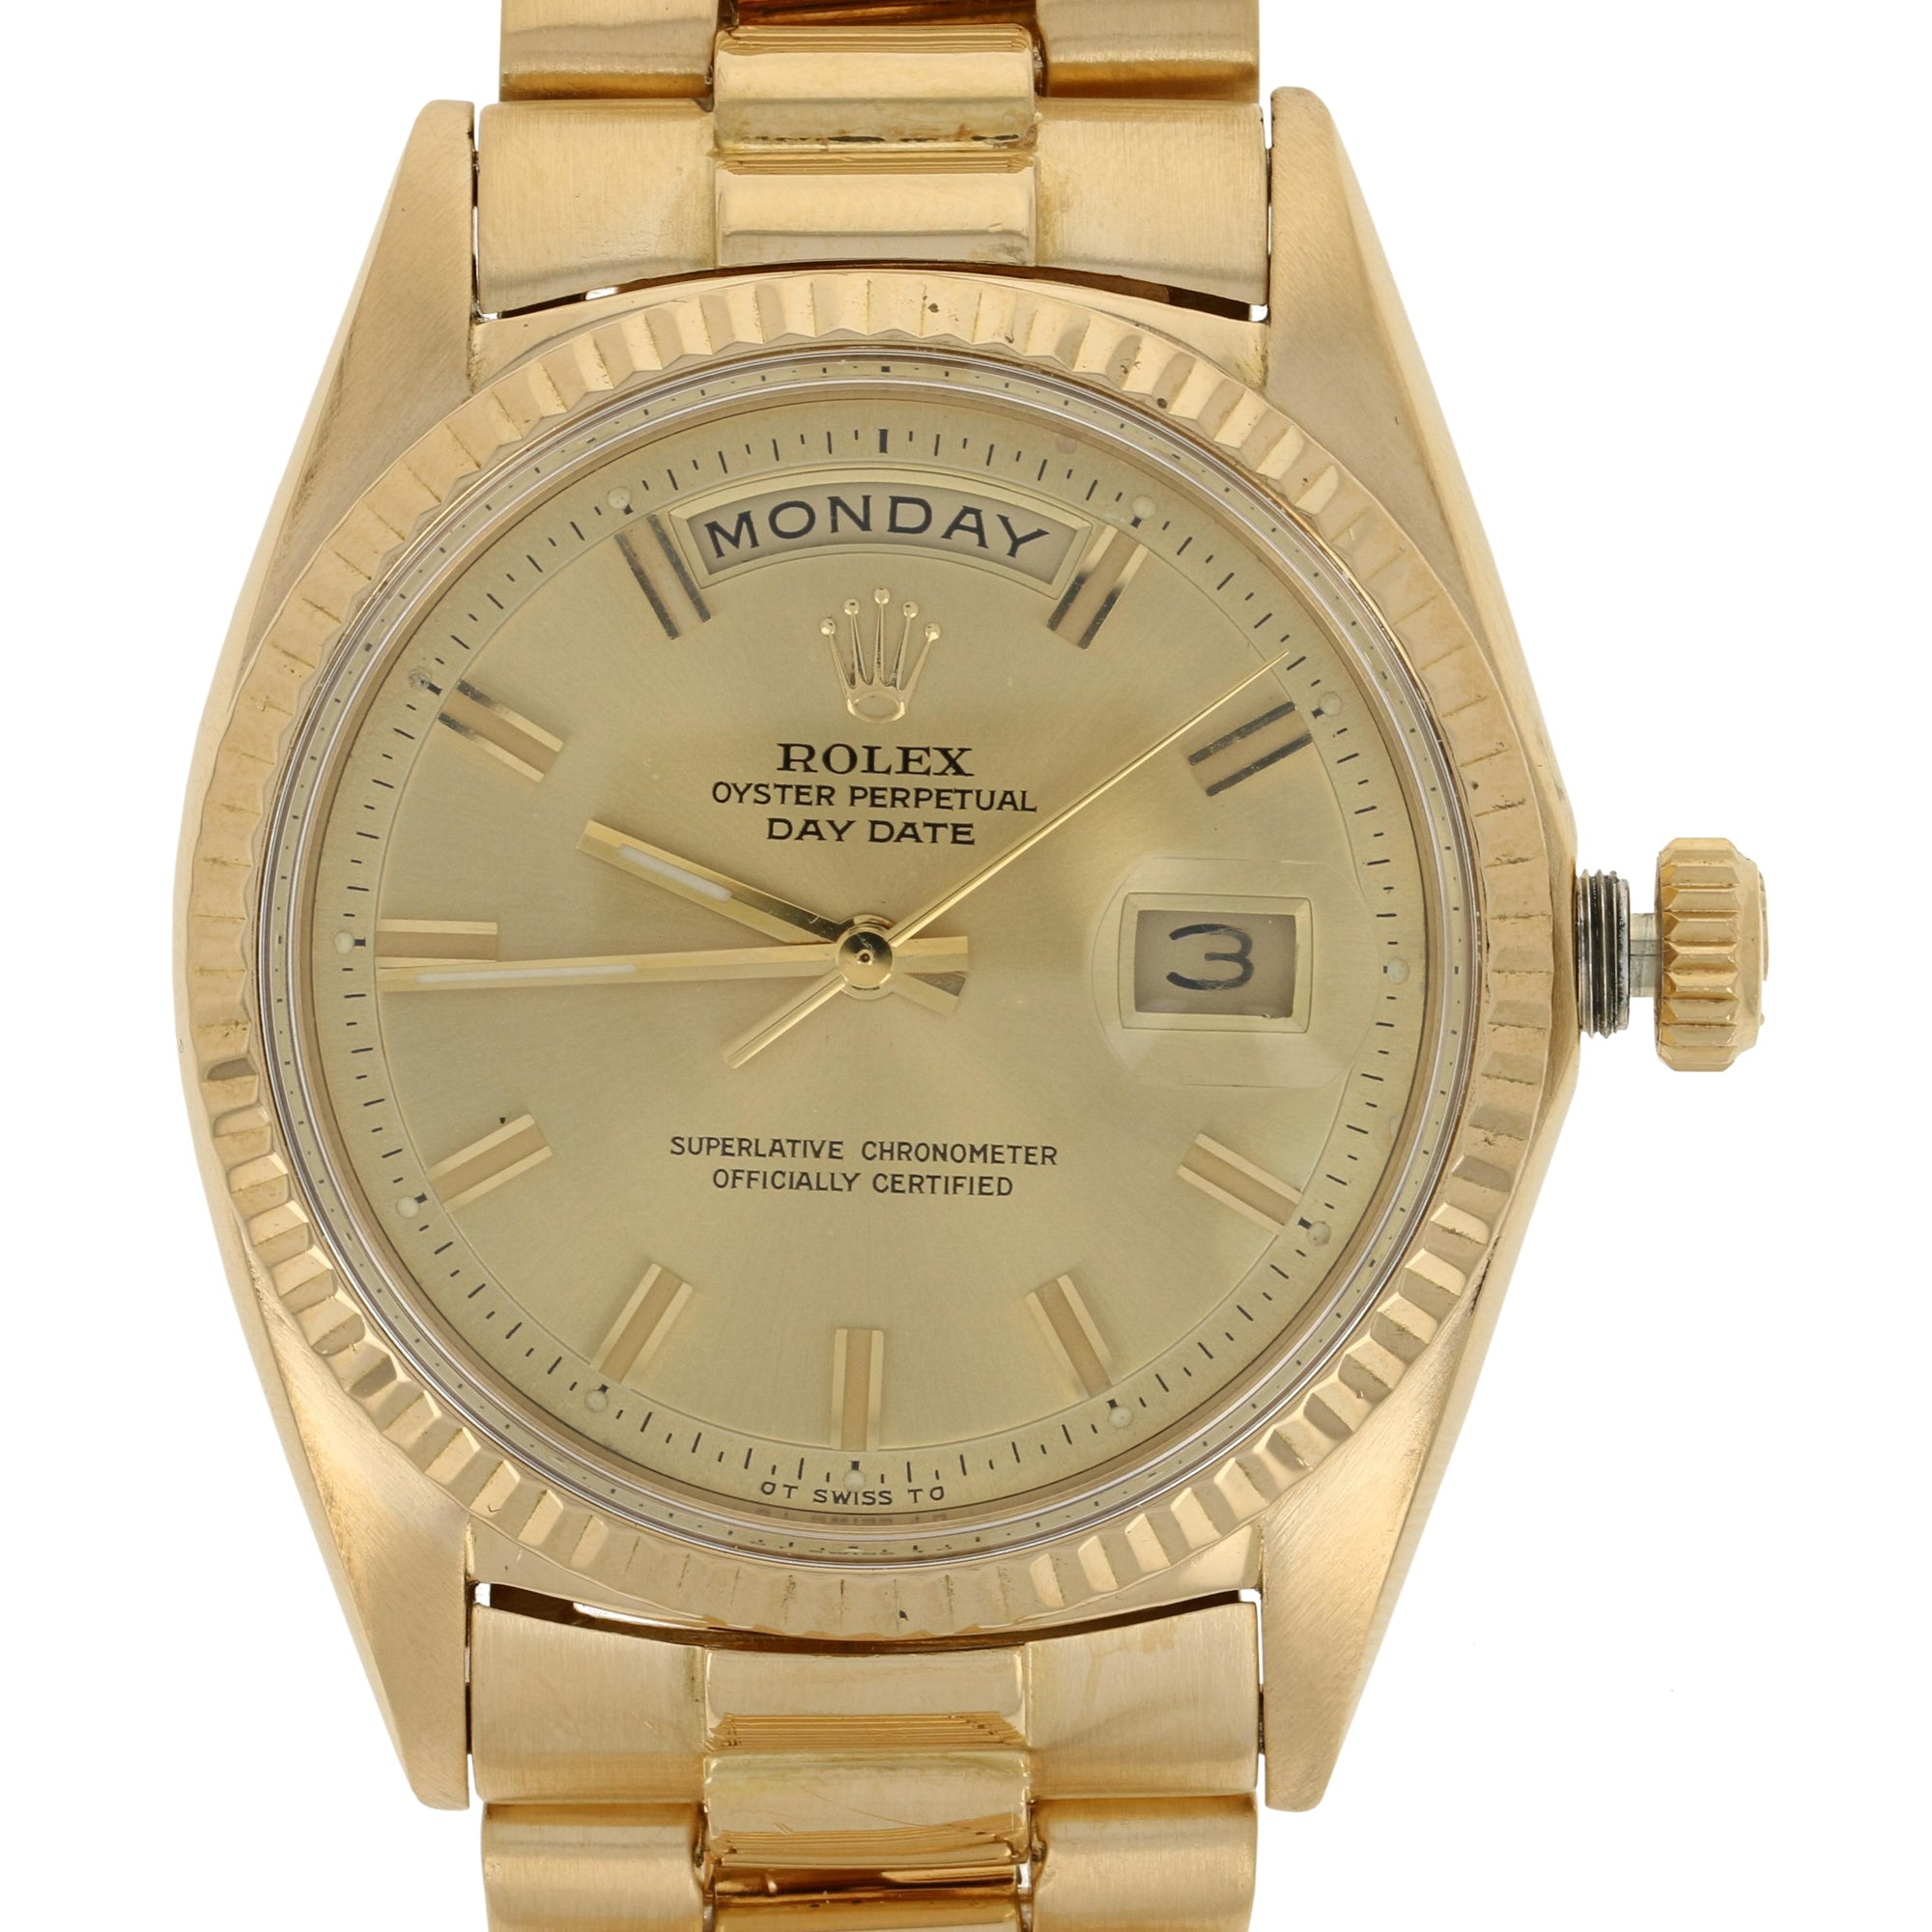 Rolex Oyster Perpetual Day Date Men's Watch 1808